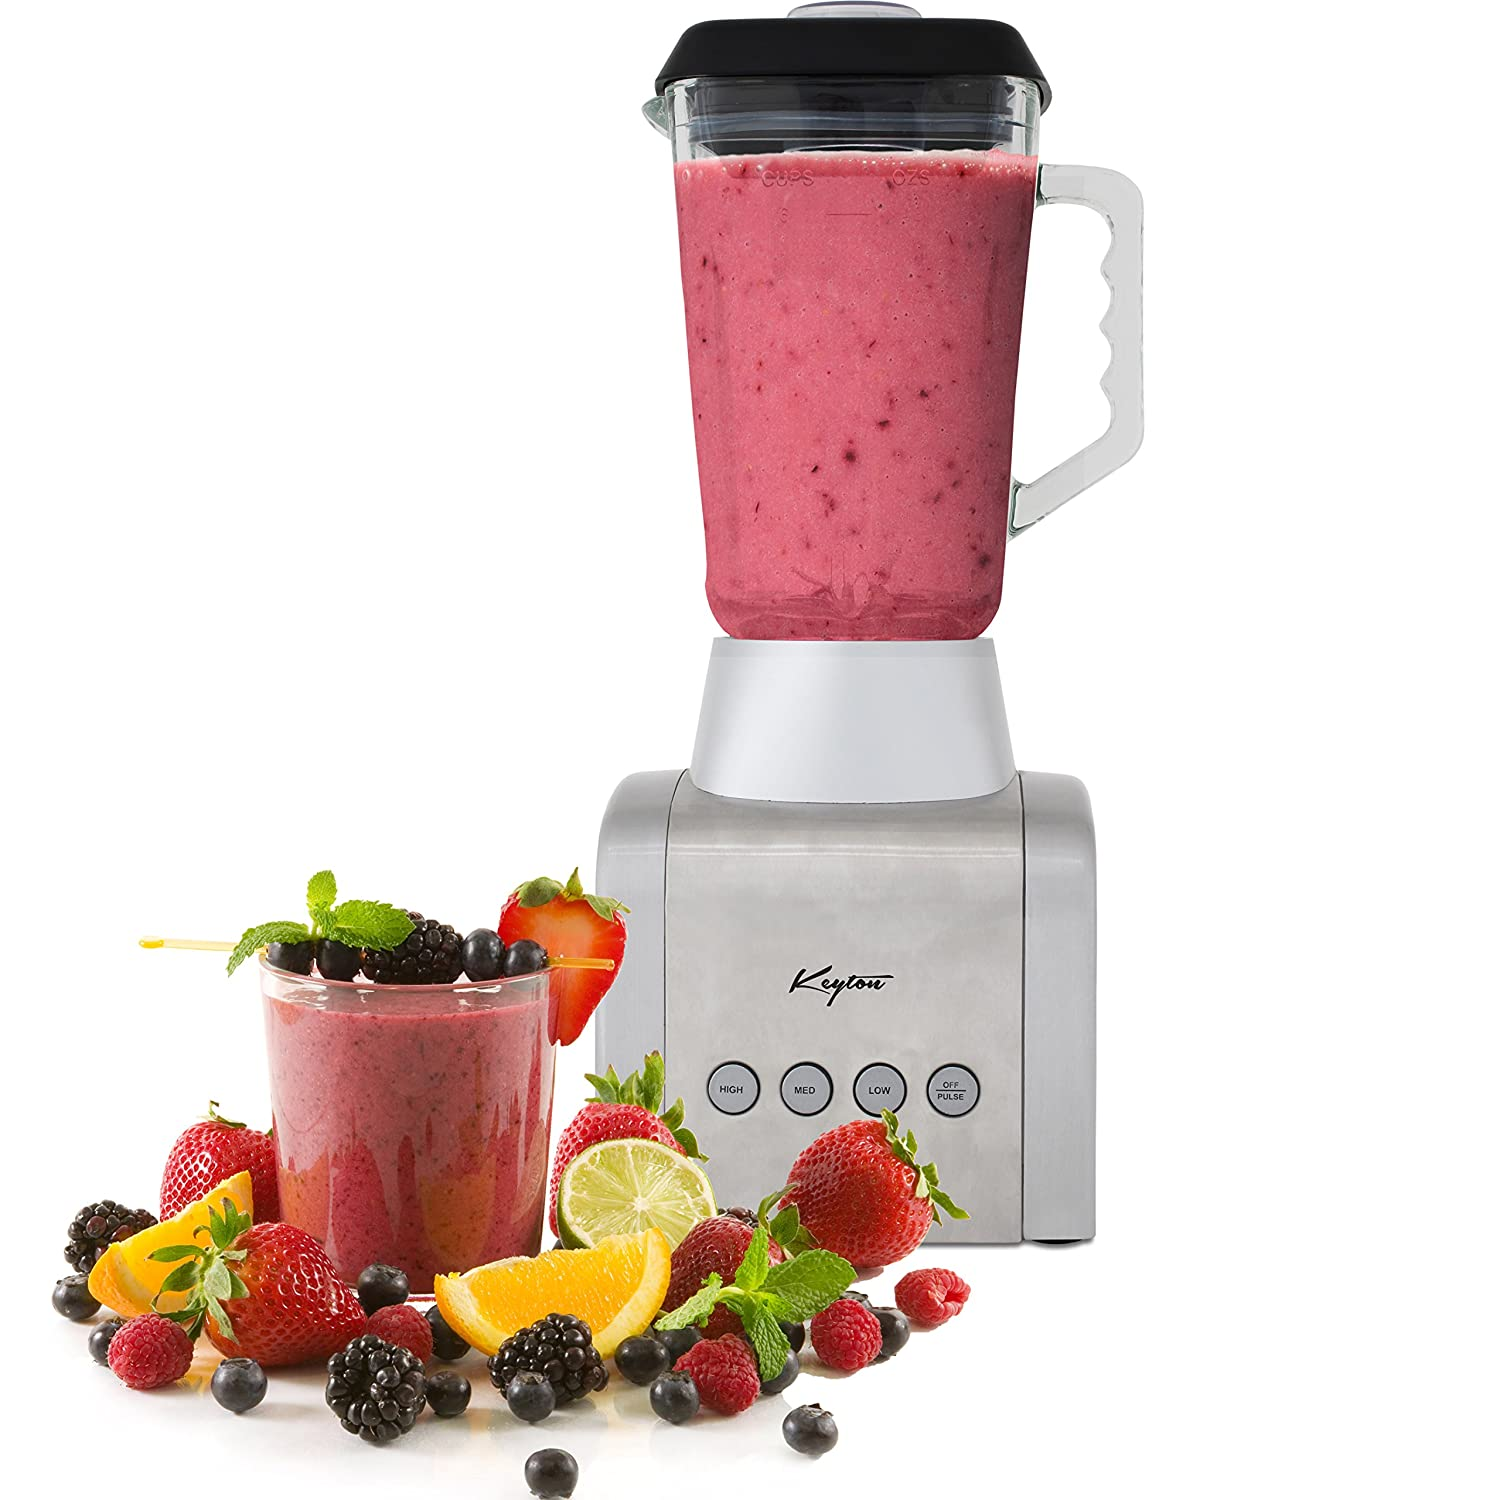 Stainless Steel Countertop Blender - Four Automatic Speed Settings, Stainless Steel Blade & 1.5 Liter Glass Jug- By Keyton BHRS Group (Large Appliances) K2-BLENDERBLK